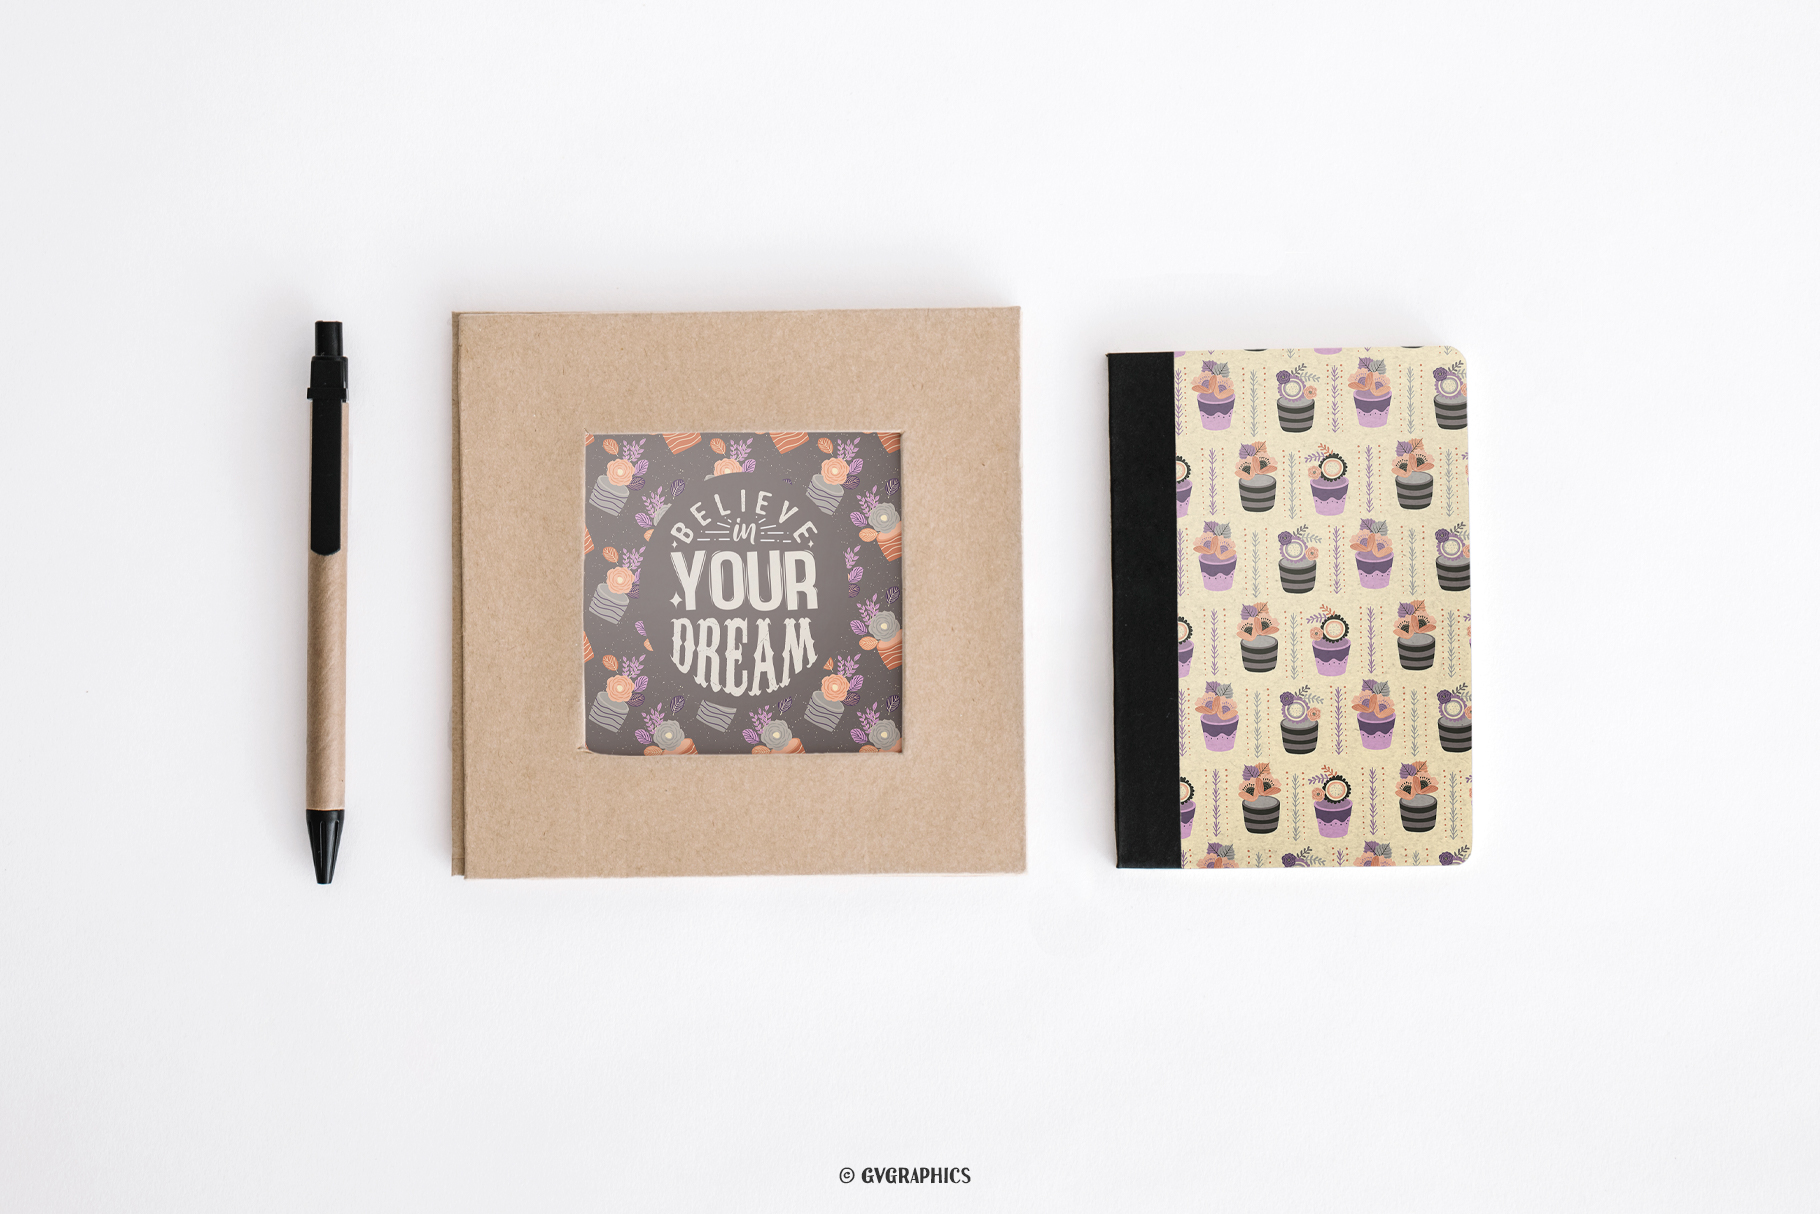 Art Poster And Notebook Made On The Basis Elegant Flowers Seamless Patterns